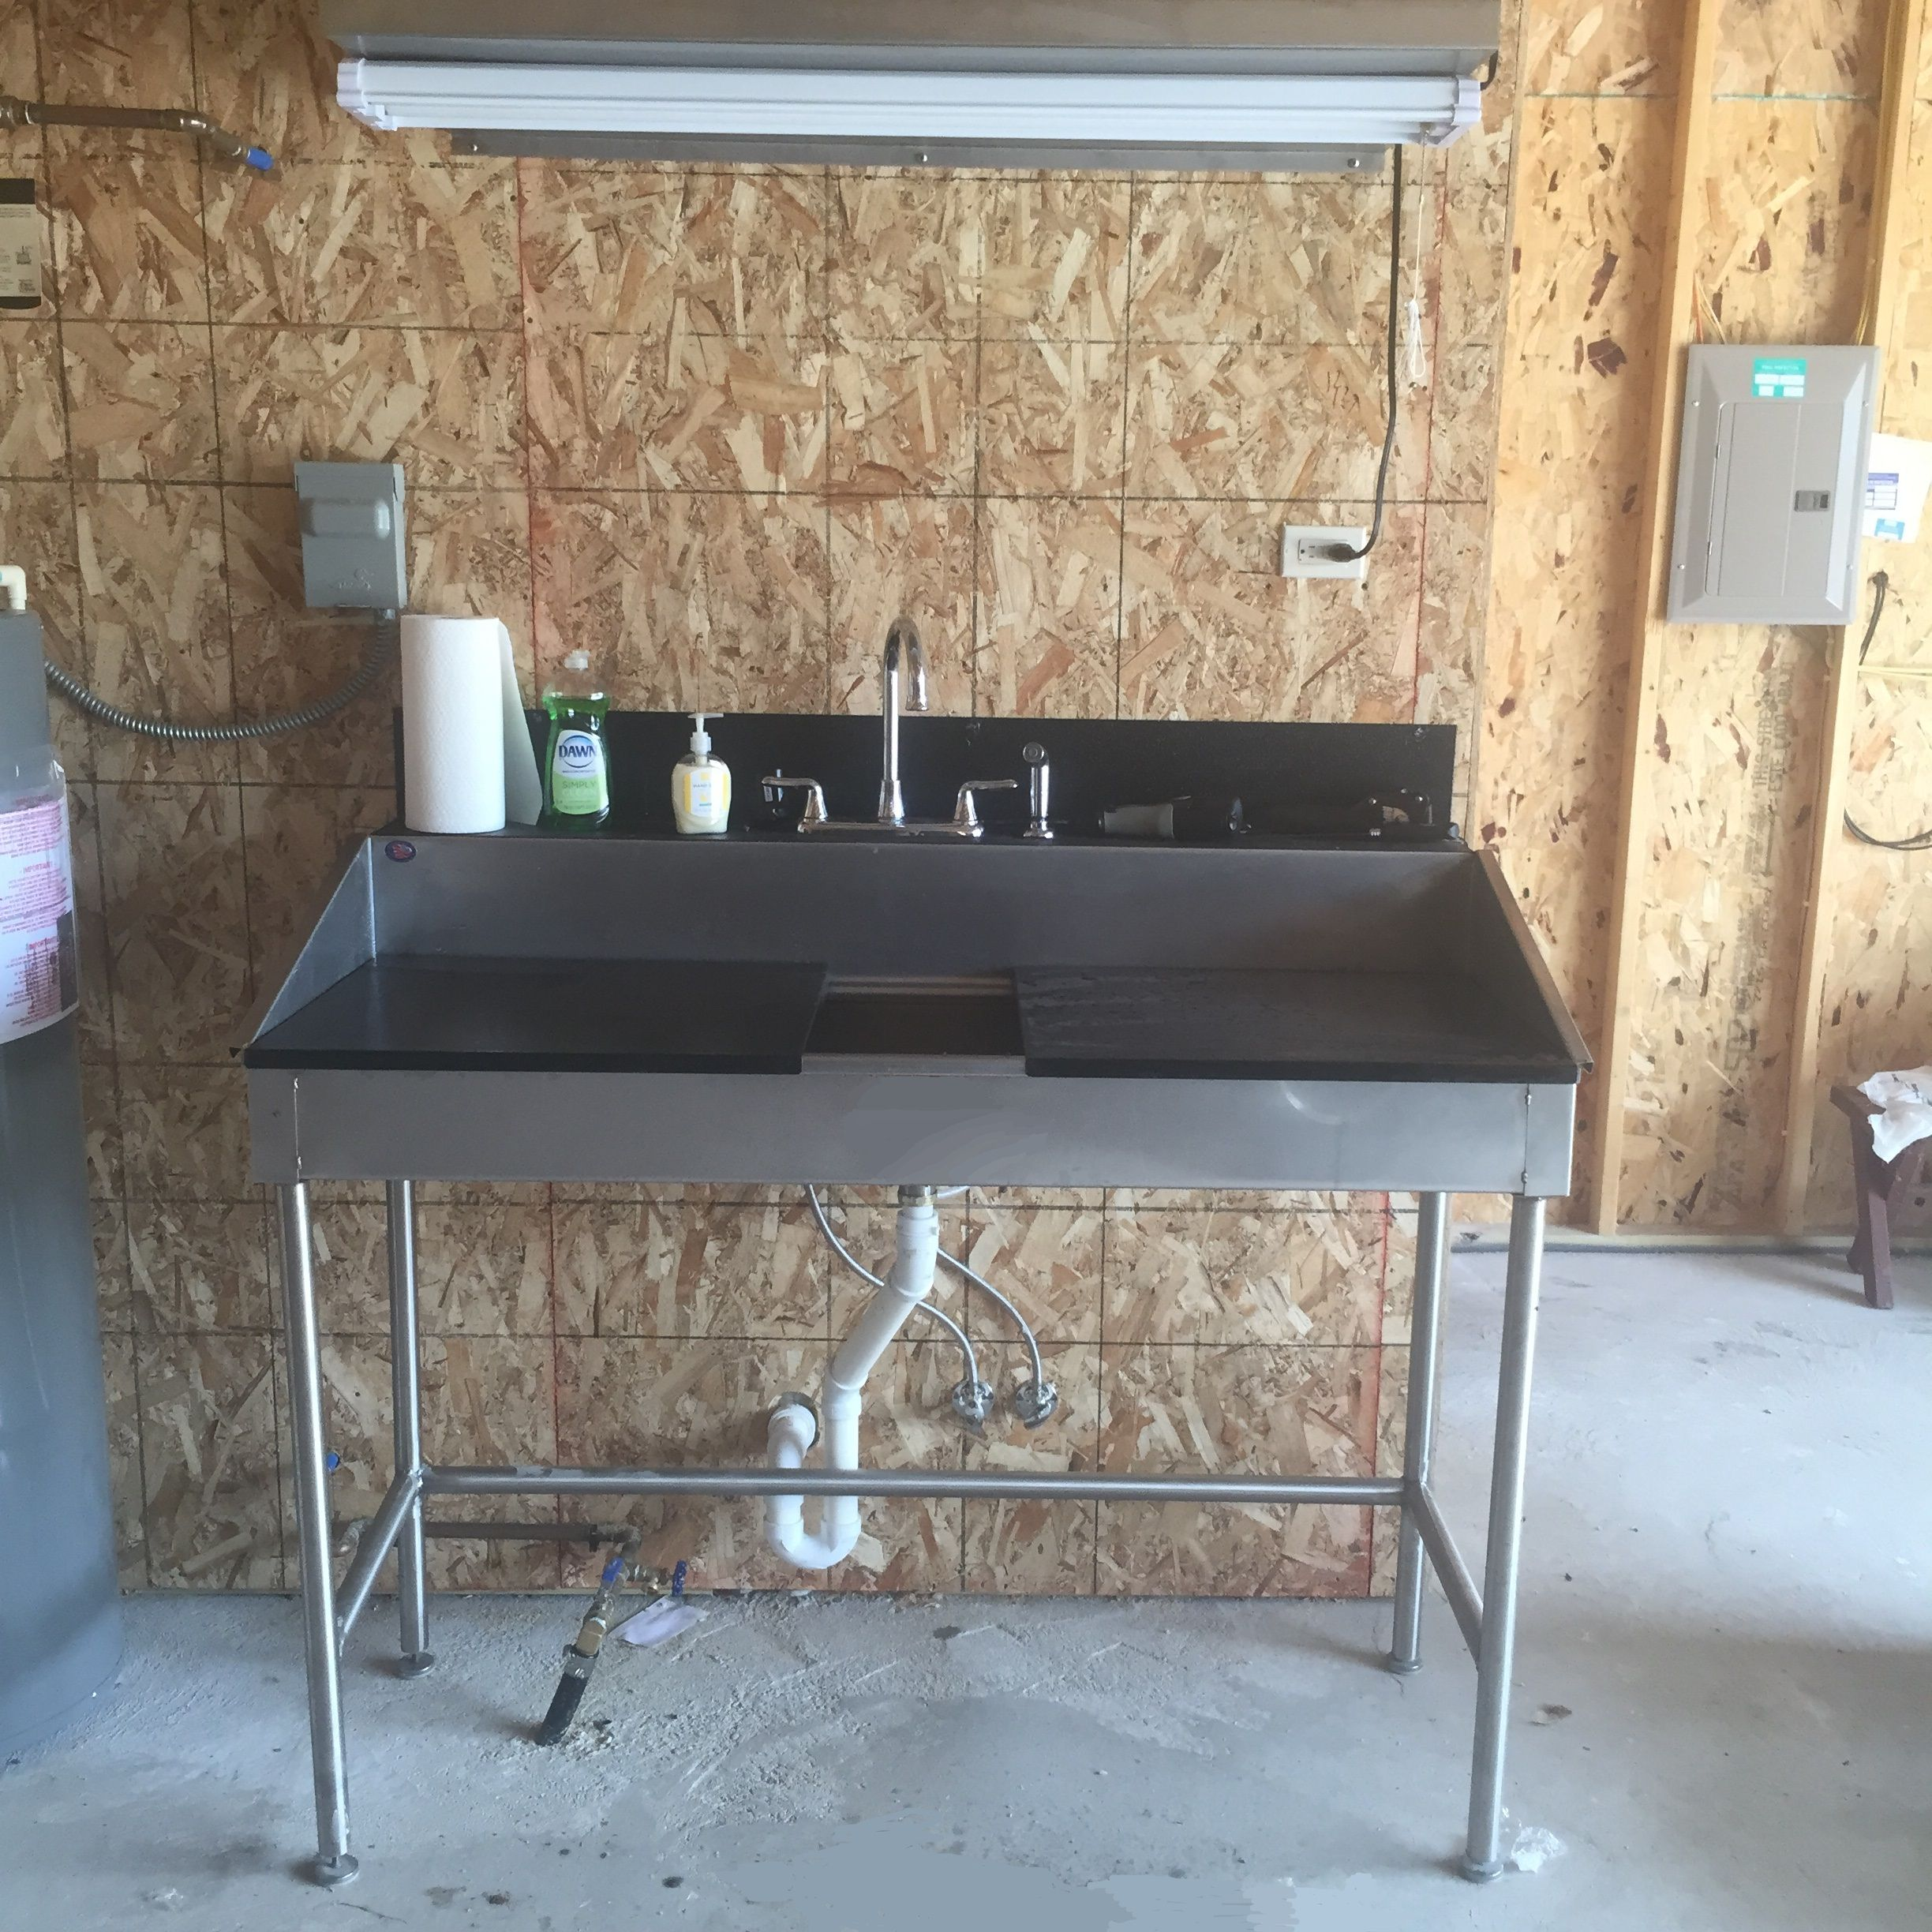 Best Utility Sink Installed In A Lake Home Garage!